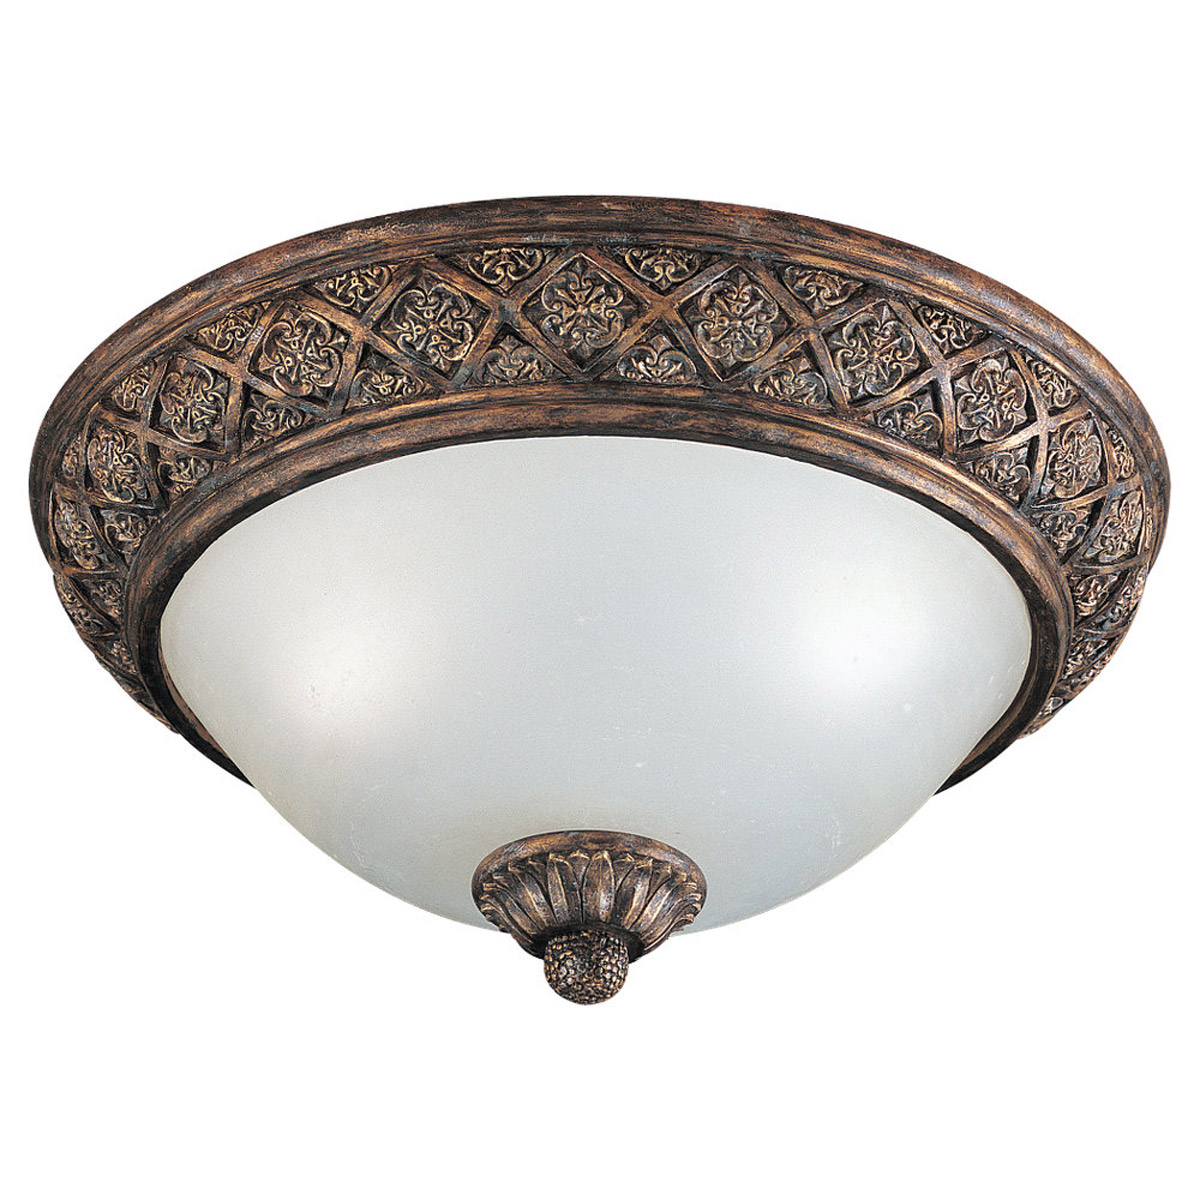 Sea Gull Lighting Highlands 2 Light Flush Mount in Regal Bronze 75250-758 photo